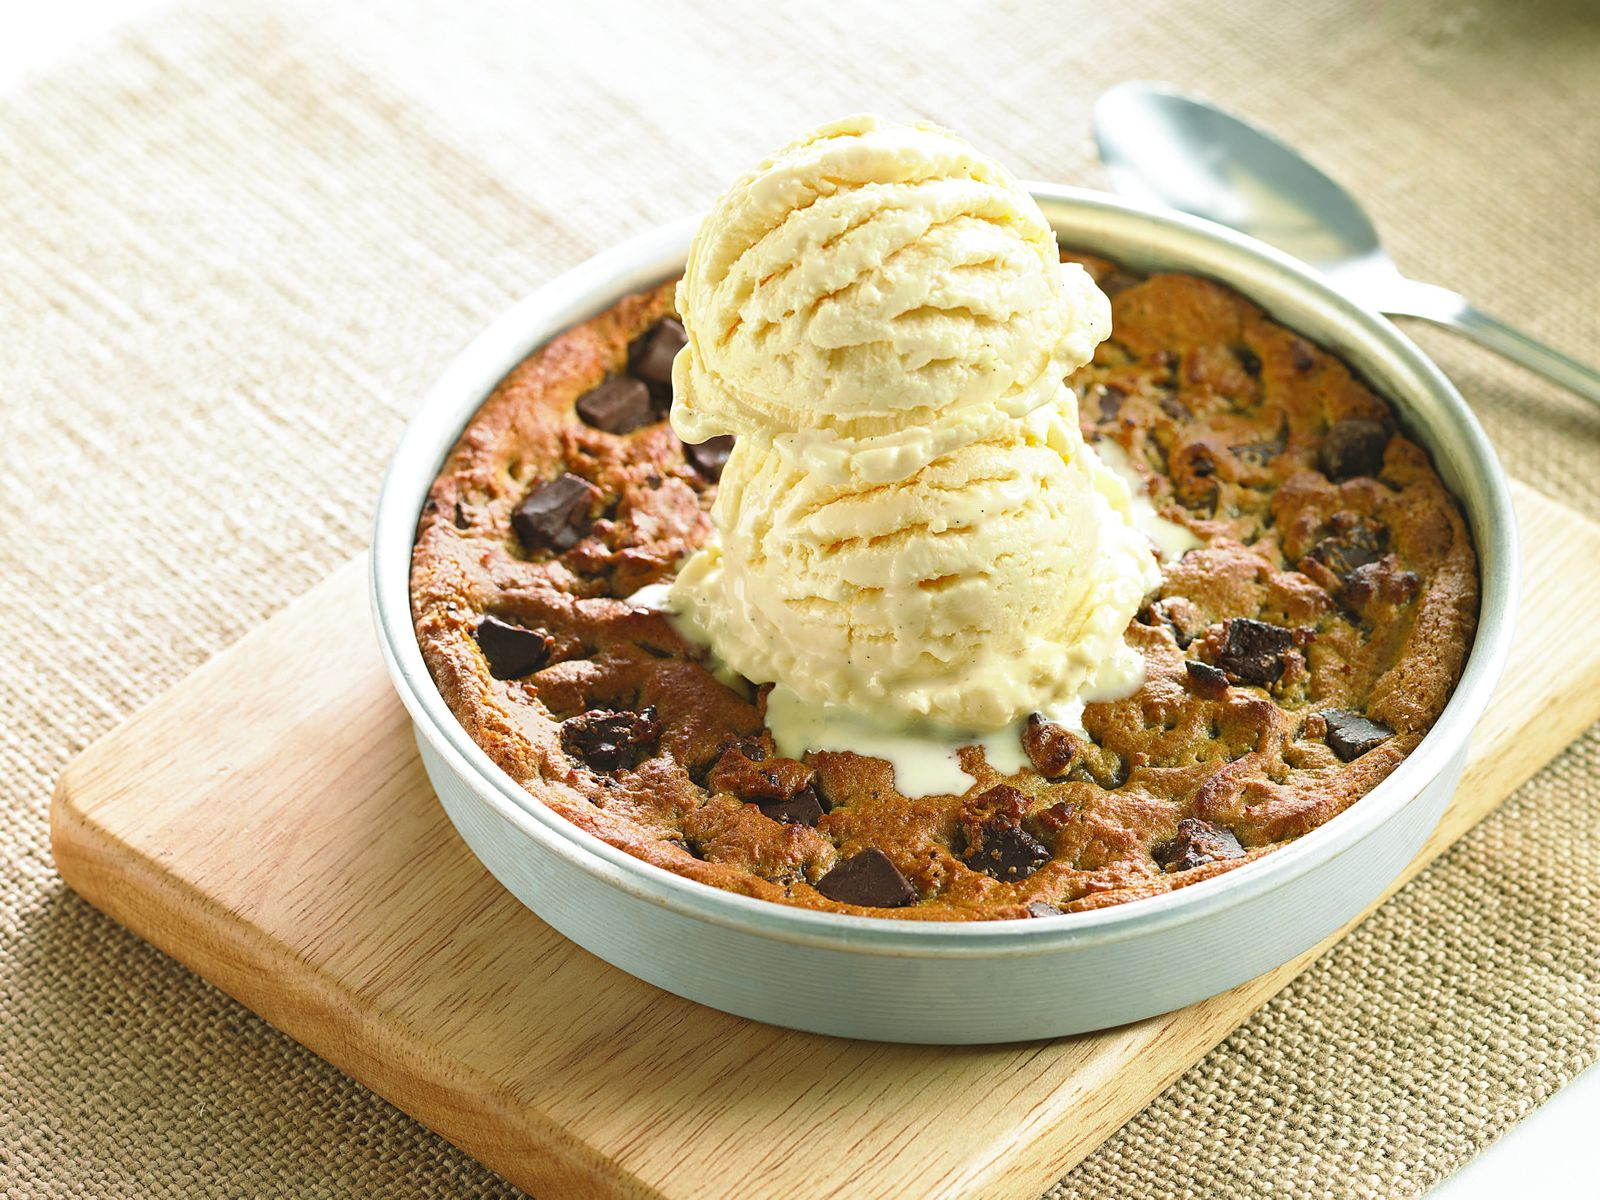 BJ's Restaurant & Brewhouse to Donate all $3 Pizookie Proceeds on September 5 to Support Hurricane Harvey Relief Efforts